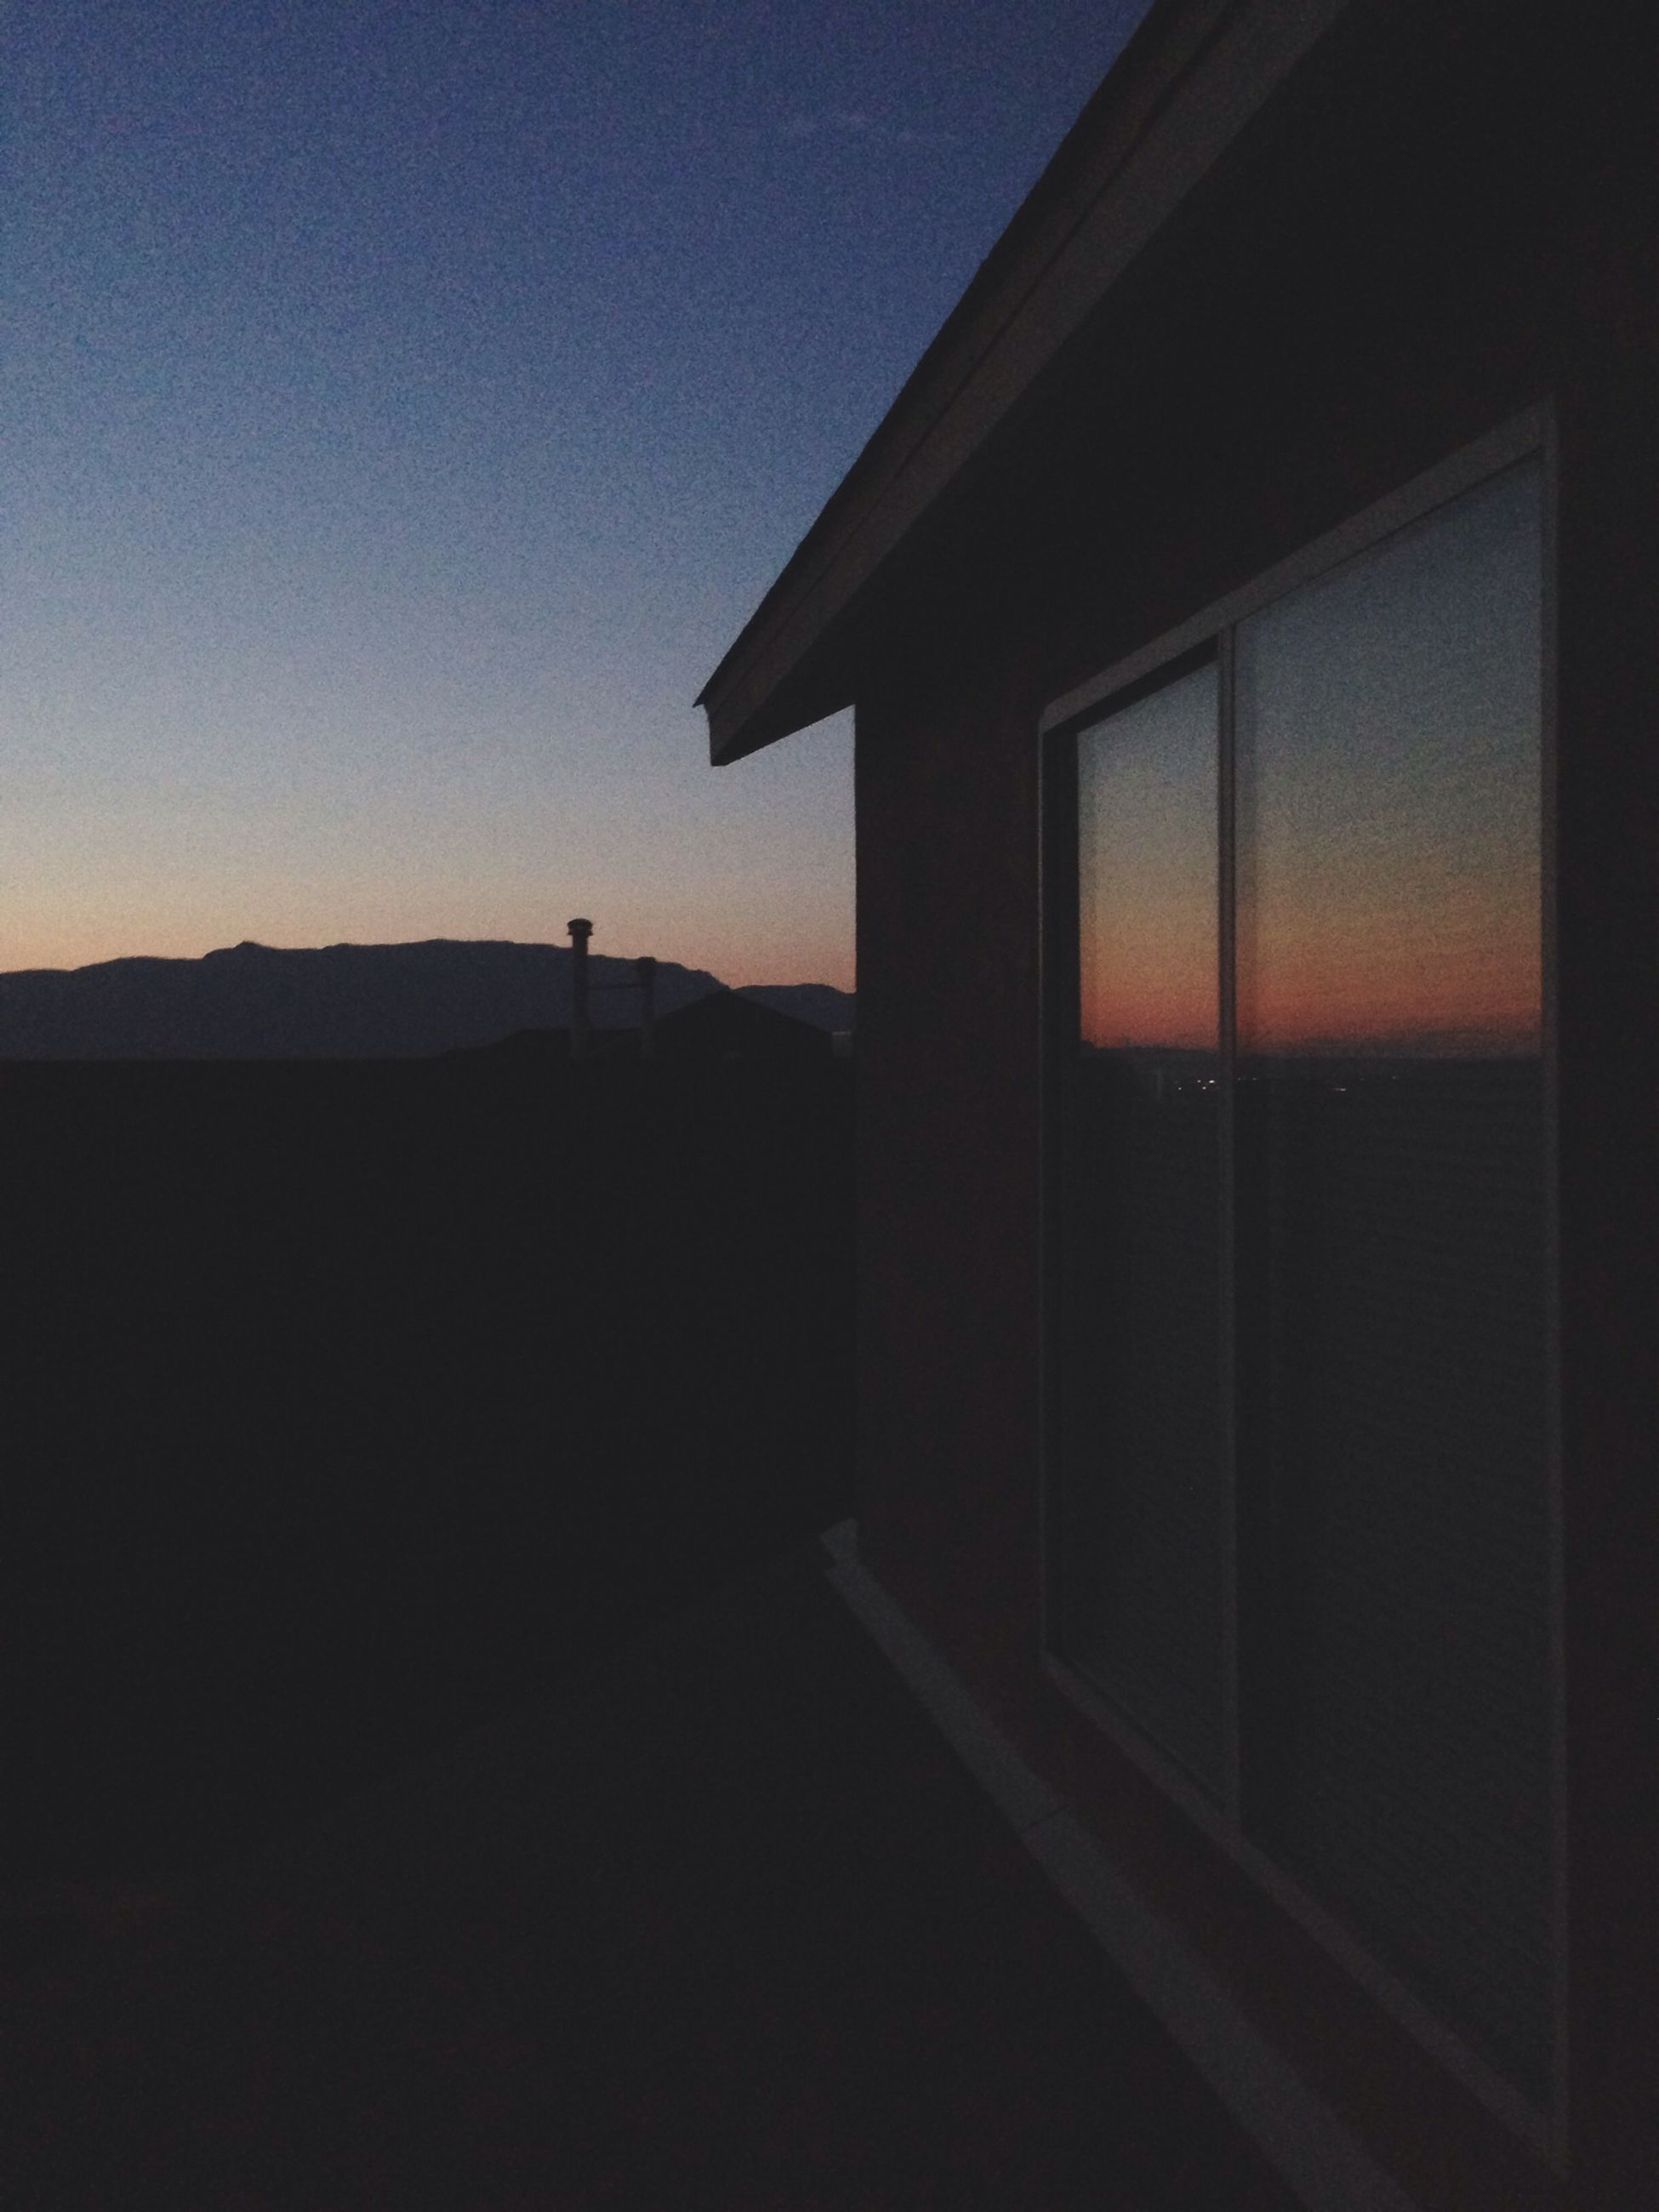 sunset, silhouette, built structure, architecture, copy space, sky, dark, clear sky, building exterior, dusk, sunlight, orange color, tranquility, no people, window, house, outdoors, nature, tranquil scene, illuminated